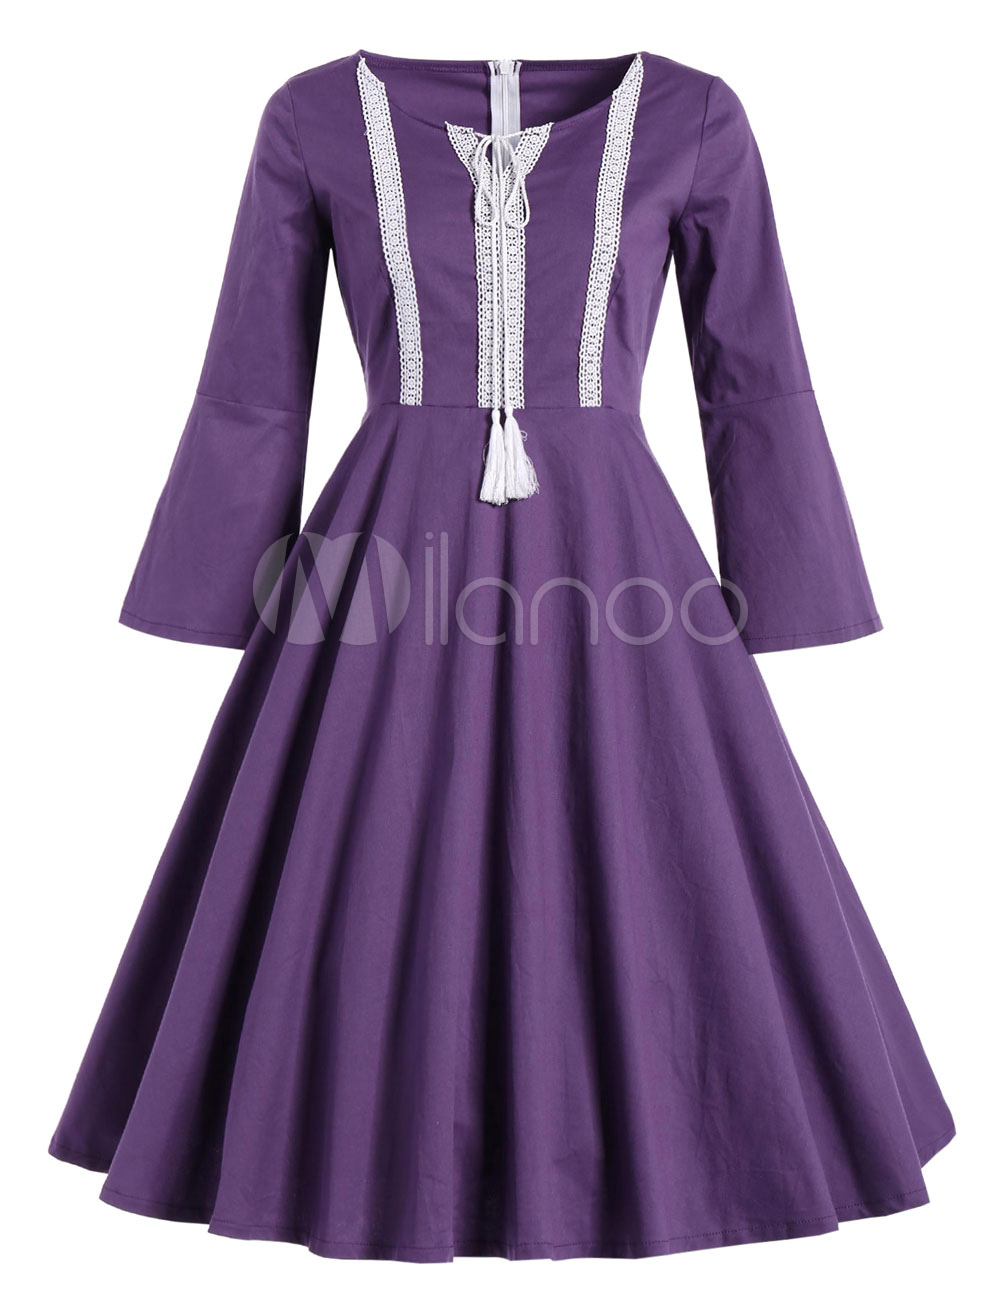 Buy Purple Vintage Dress Round Neck 3/4 Length Sleeve Pleated Skater Dress for $28.14 in Milanoo store